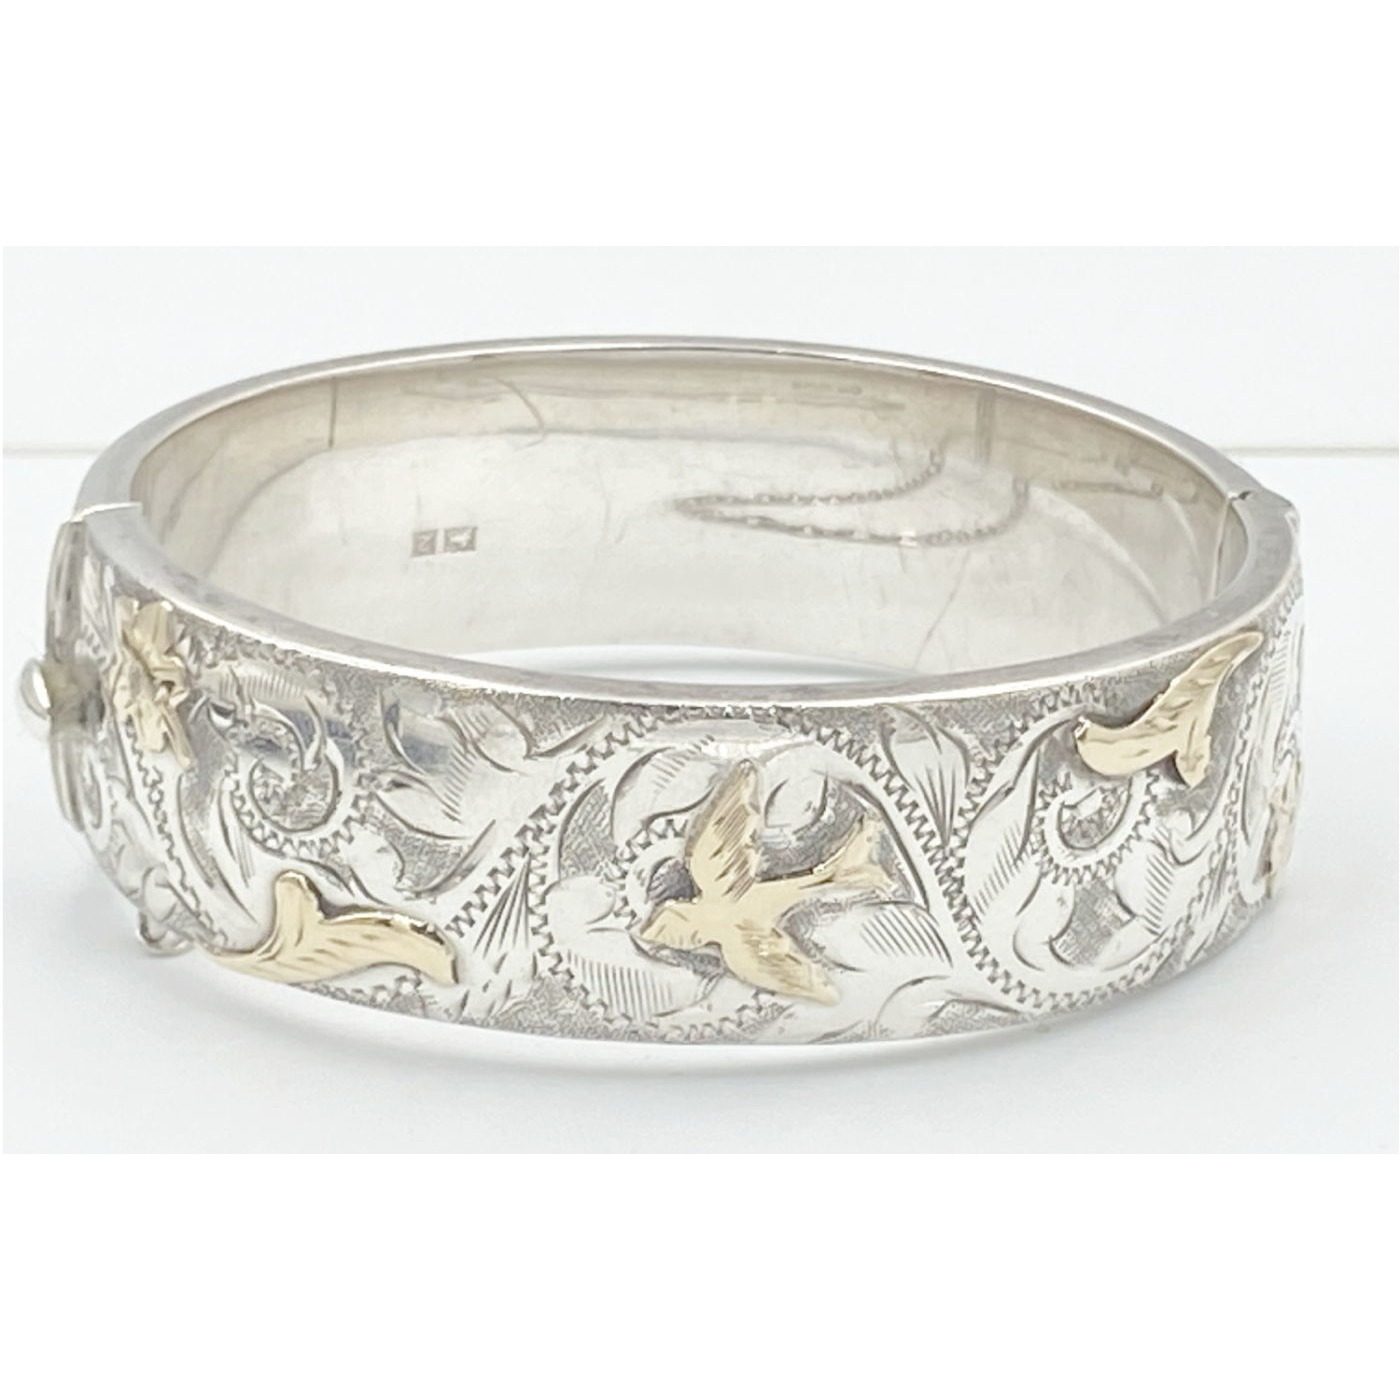 Special Victorian English Silver Bangle with Gold Birds - Slightly Larger